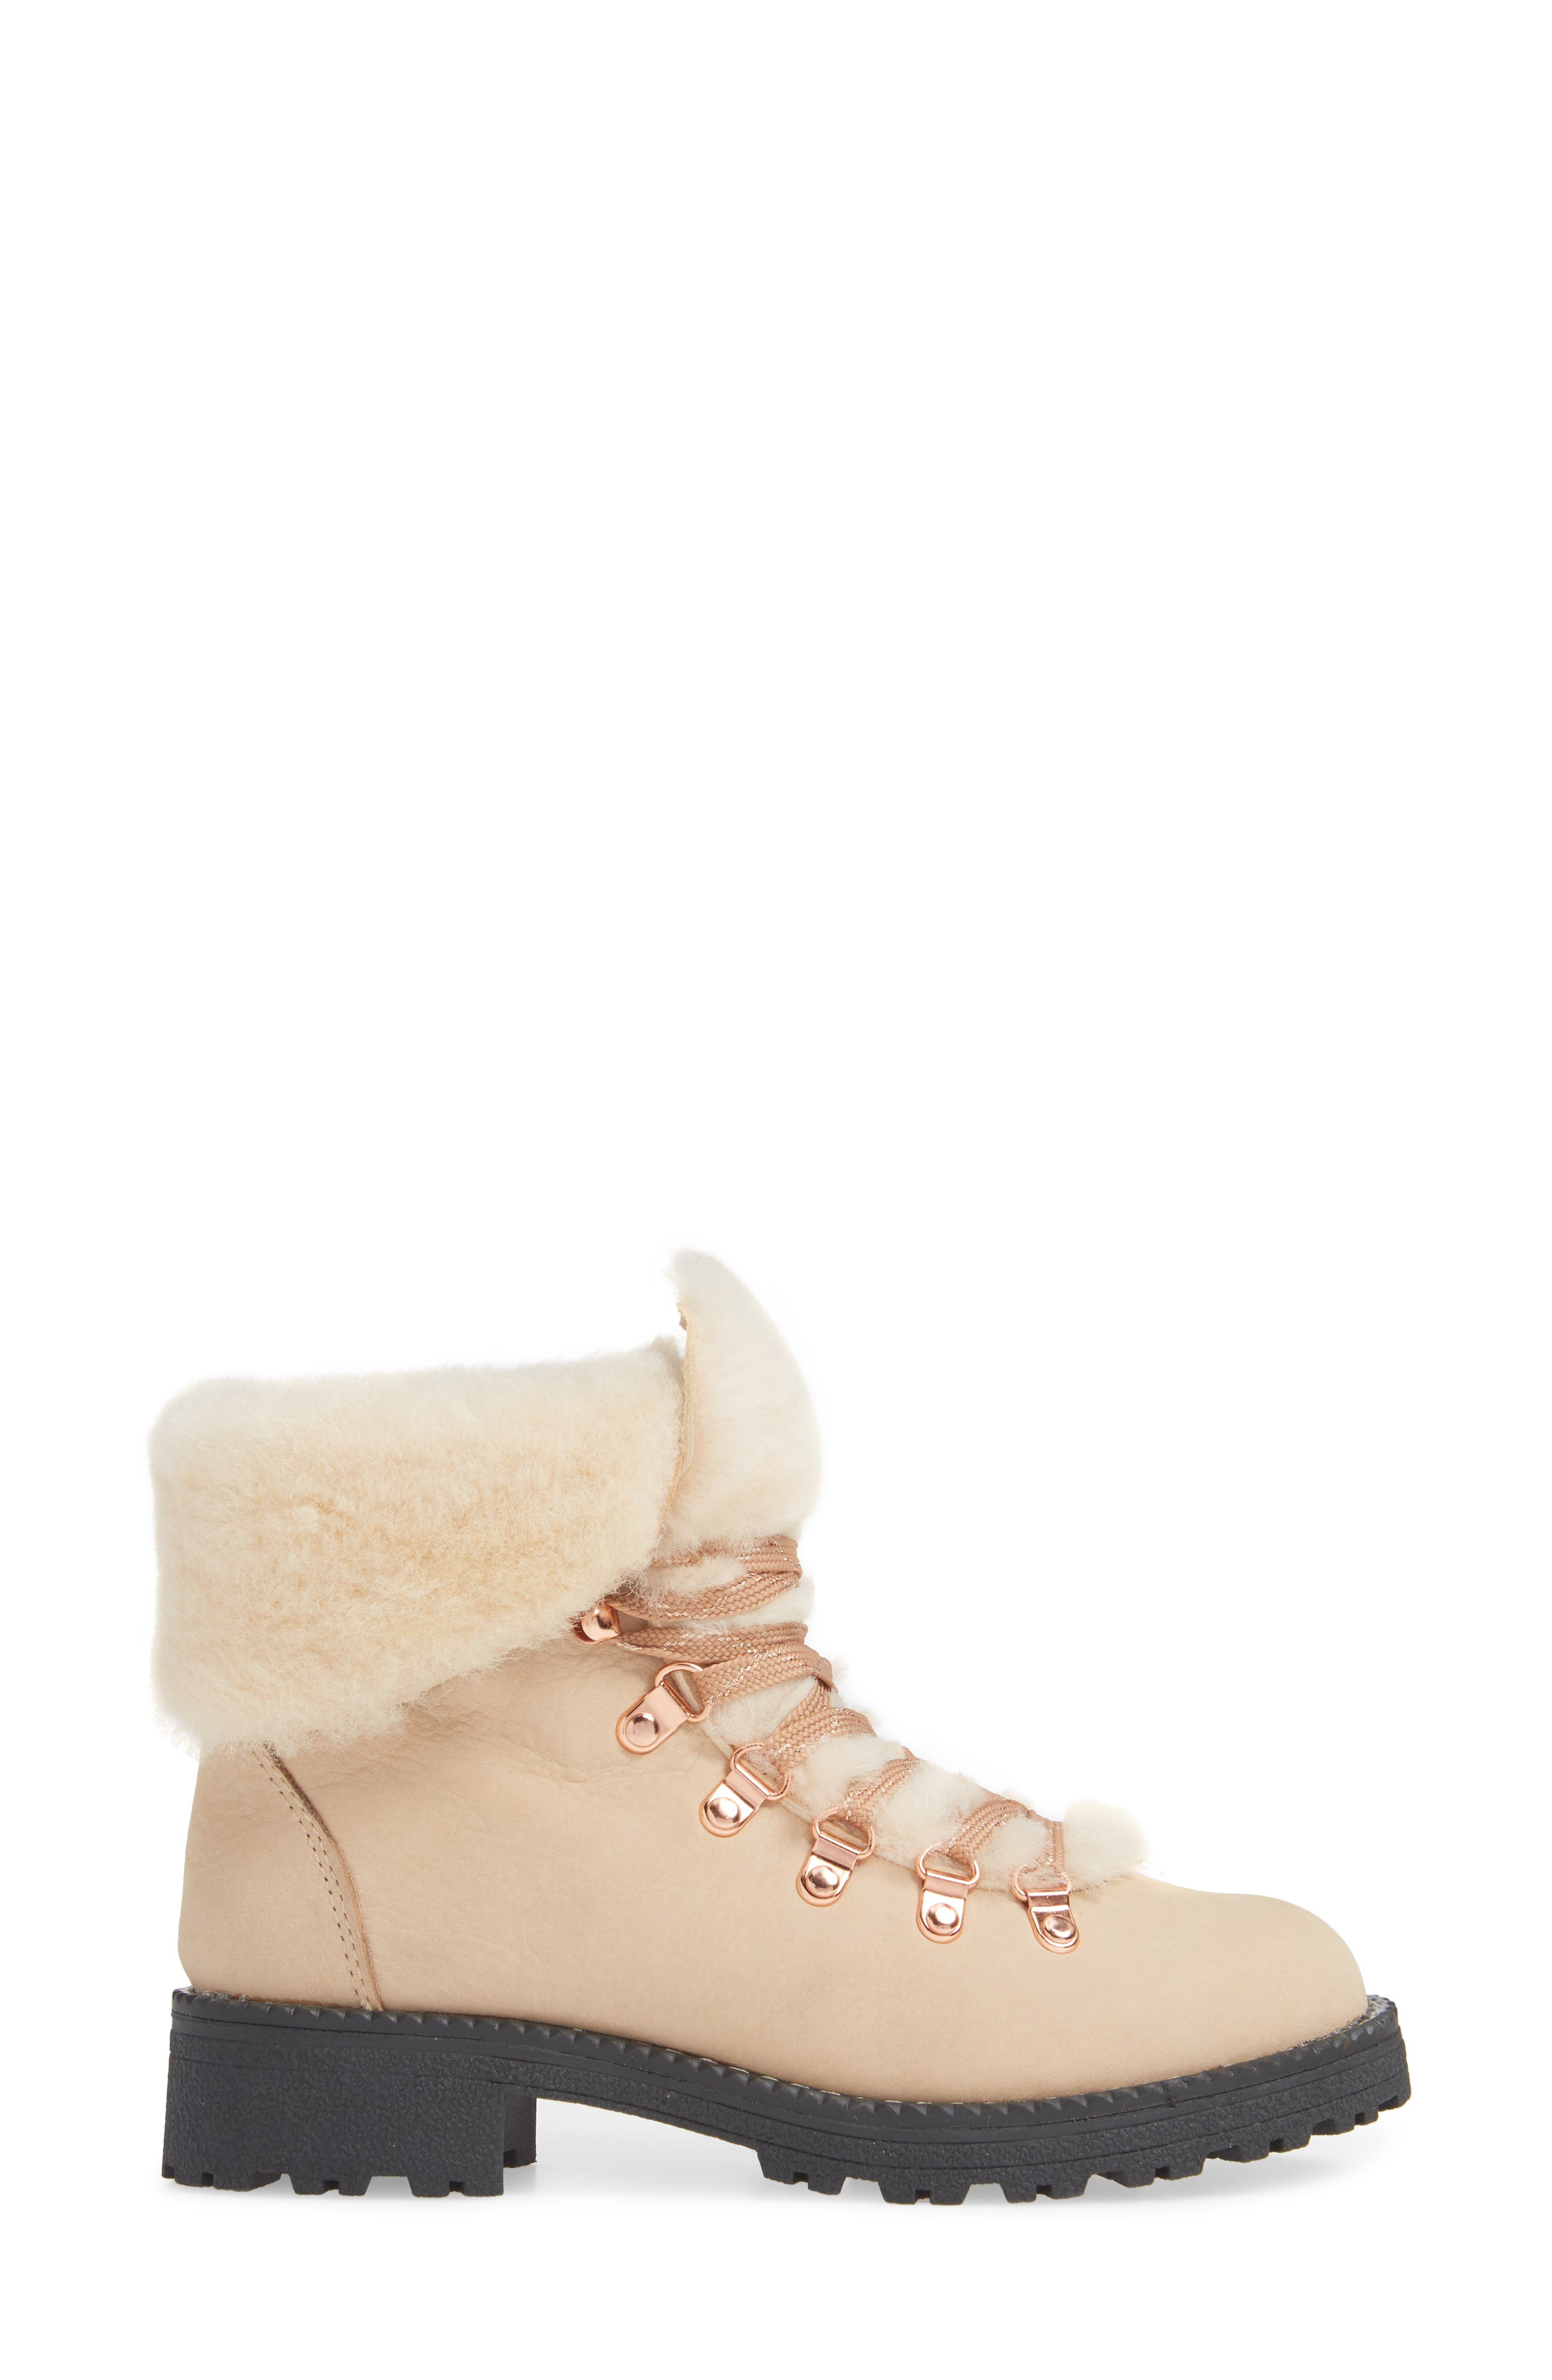 J.CREW, Nordic Genuine Shearling Cuff Winter Boot, Alternate thumbnail 3, color, 251